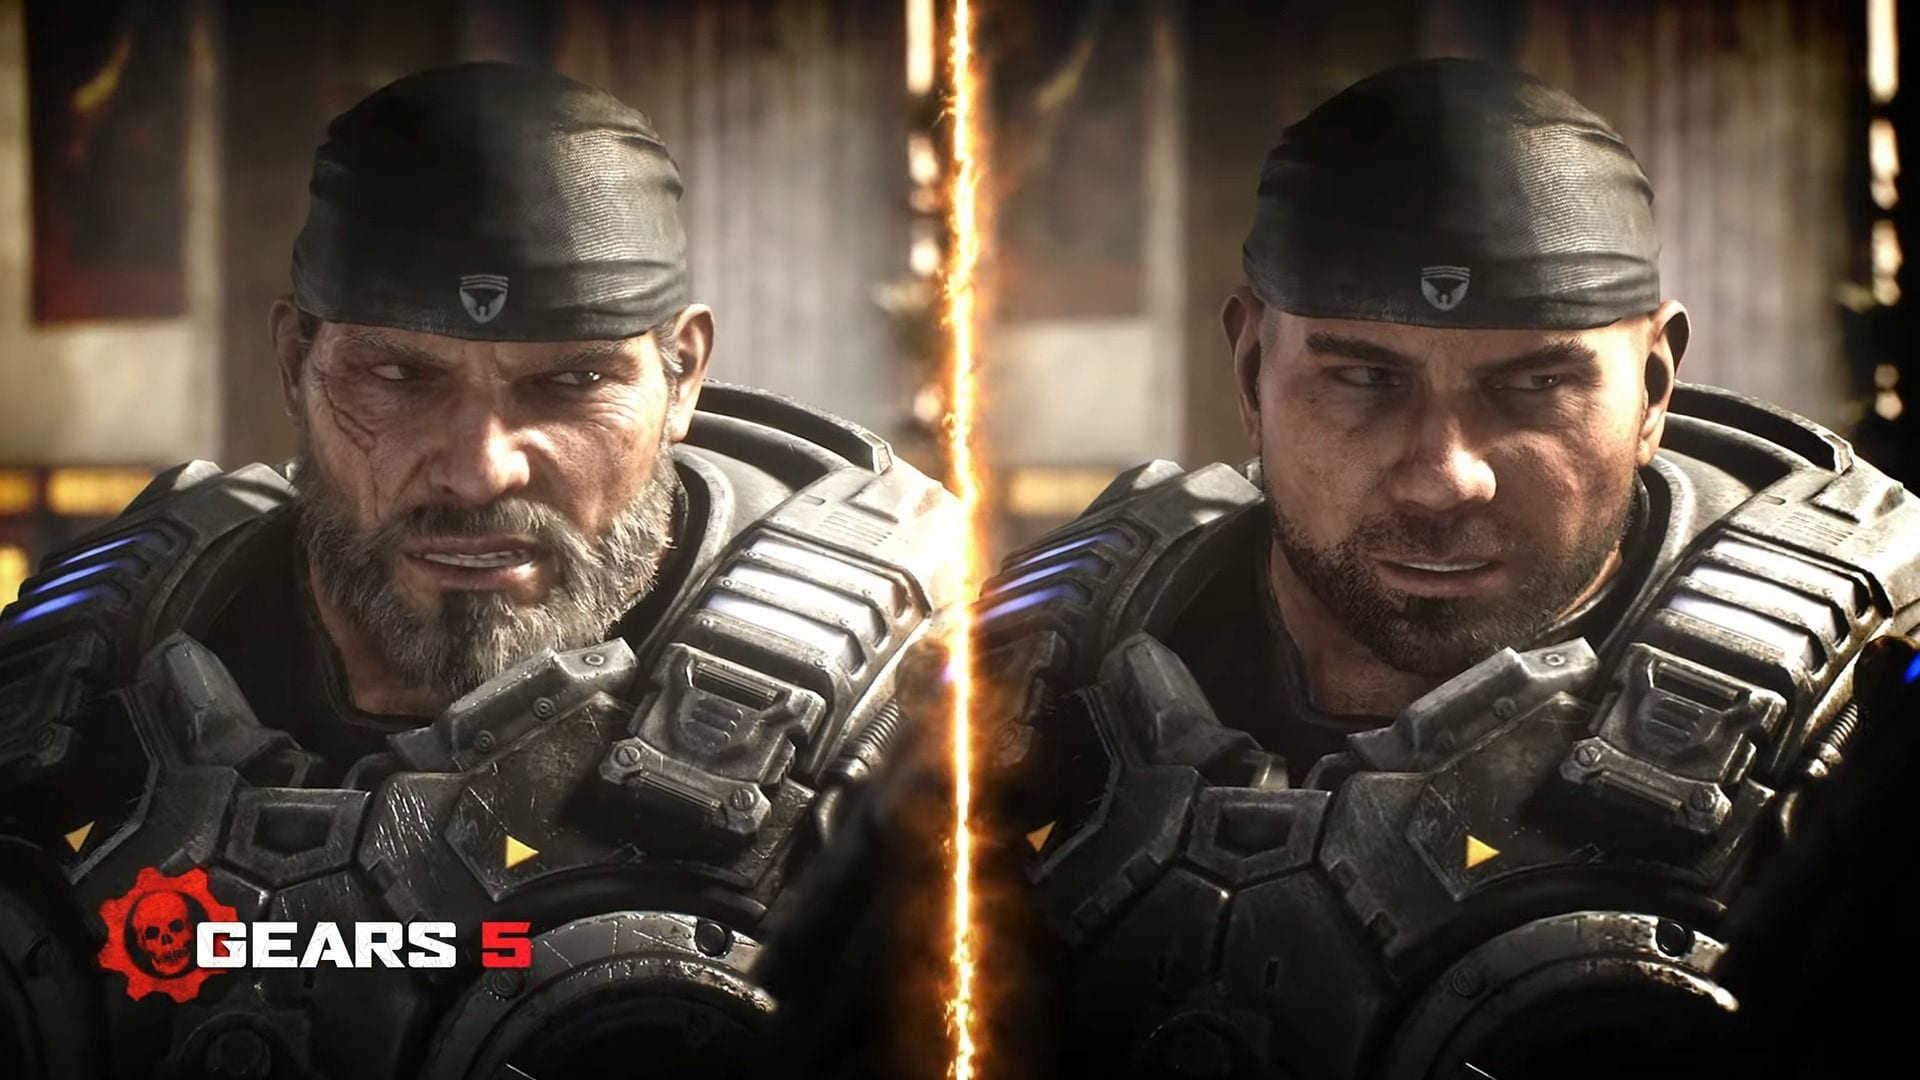 Gears 5 Trailer Is All About Dave Batista as Marcus Fenix 1